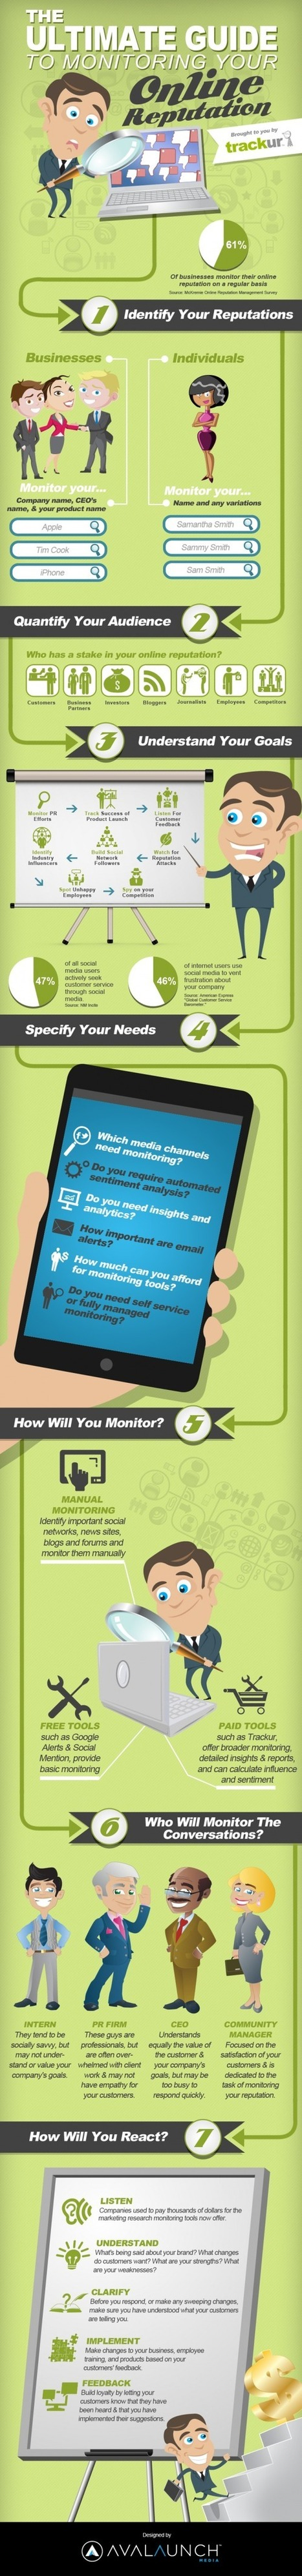 Ultimate Guide to Monitoring Your Online Reputation (Infographic) - Business 2 Community | Excellent Infographics | Scoop.it